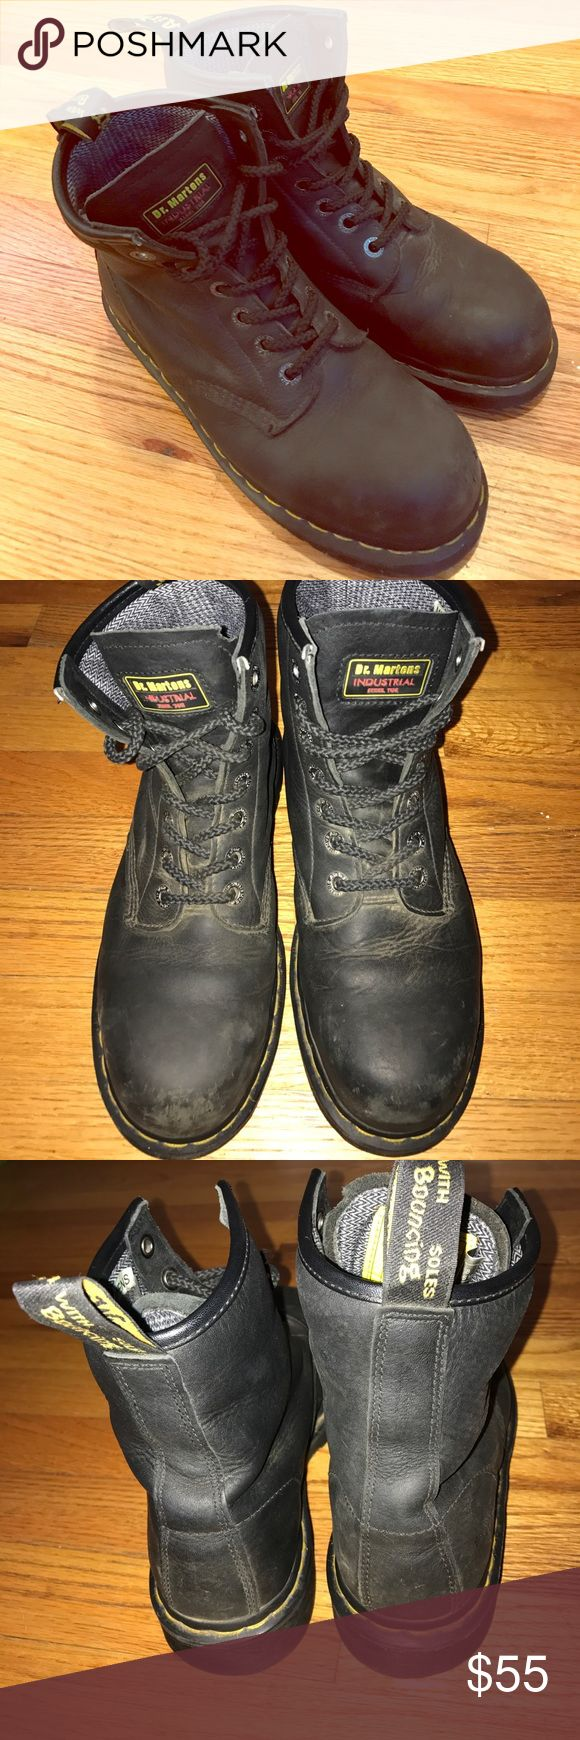 Dr Doc Martens Air Wair Industrial Steel Toe Boot Dr Doc Martens Air Wair DM's Industrial Steel Toe Black Ankle Boots Mens US 9 M. Normal wear and tear but honestly amazing quality, soles look brand new! A little tear on right boots tongue shown in picture. Dr. Martens Shoes Boots